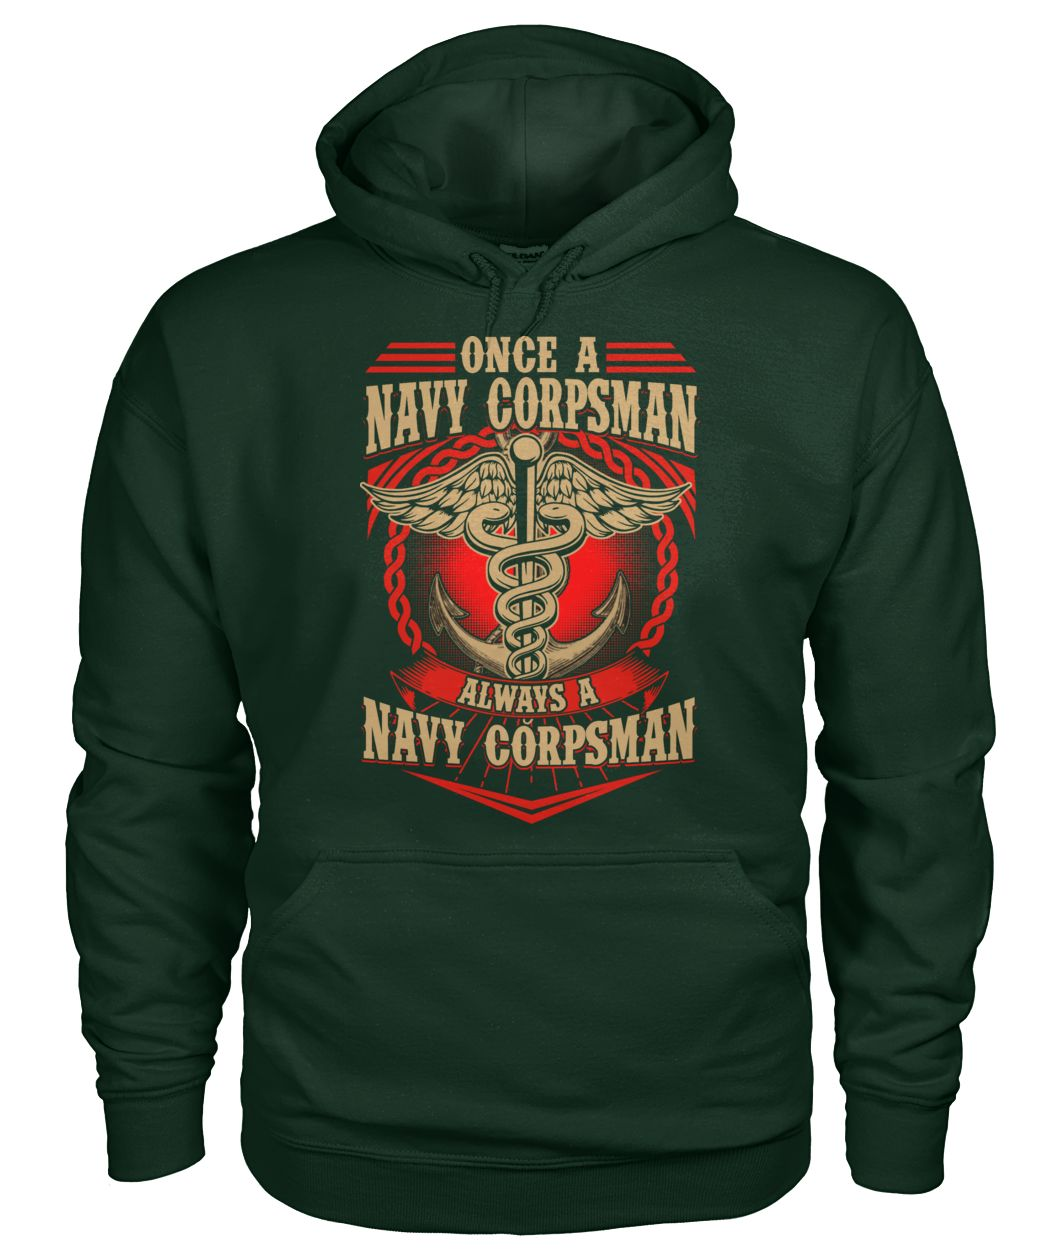 Once a navy corpsman always a navy corpsman wp